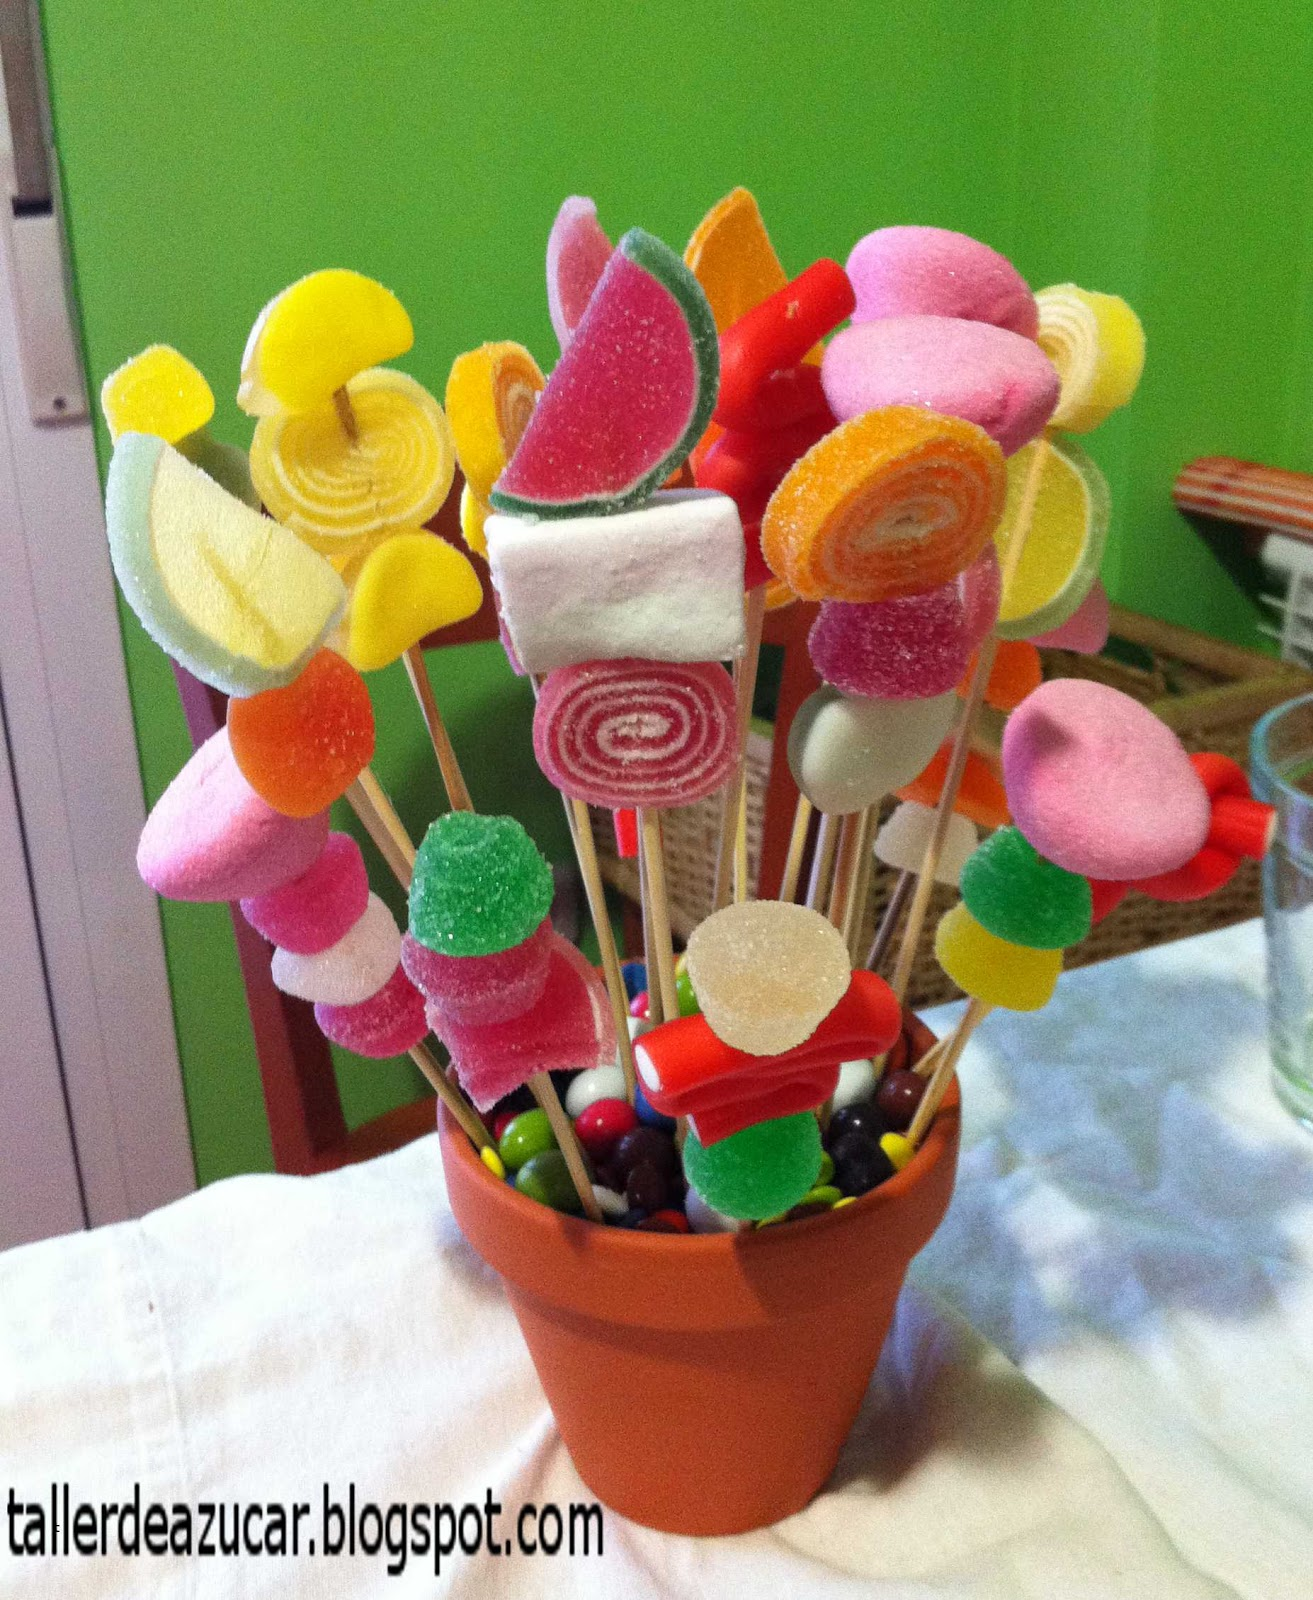 taller de az car brochetas de chuches ideas dulces